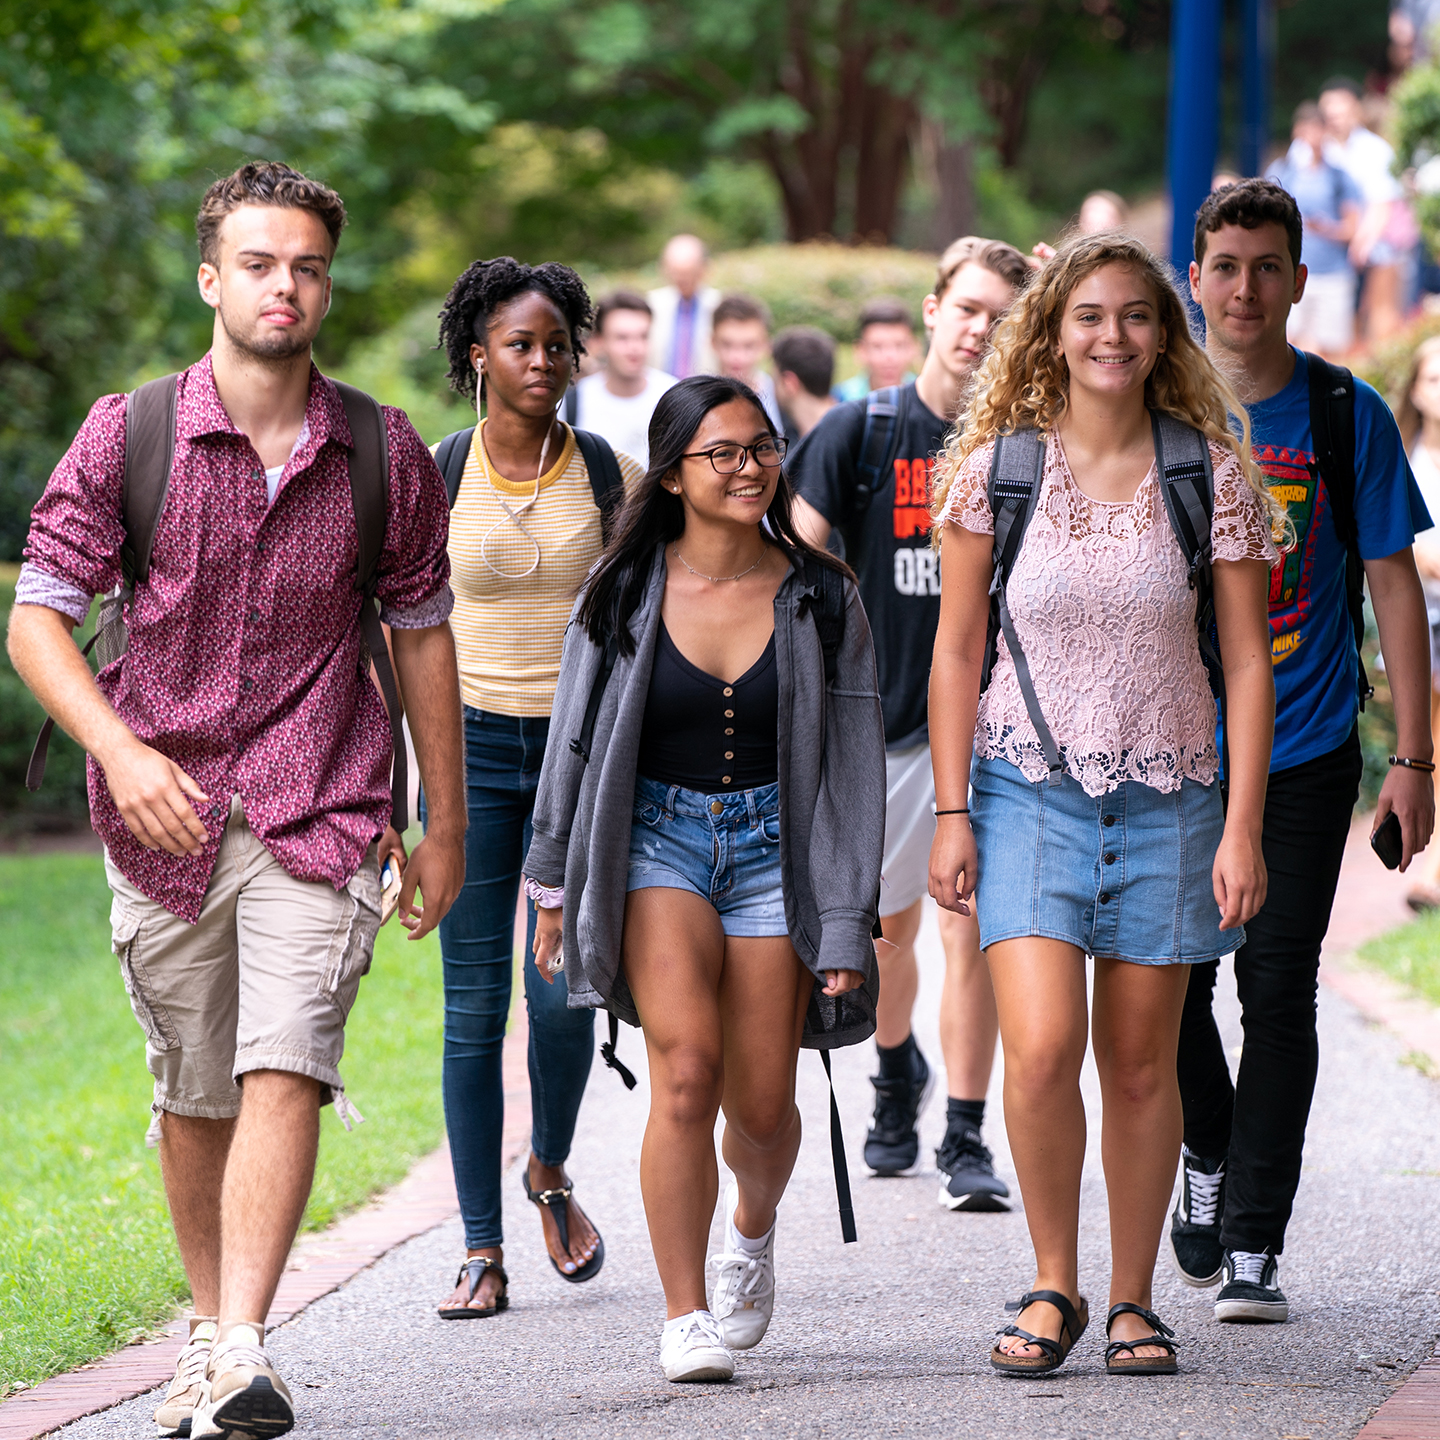 Students walk across campus between classes.